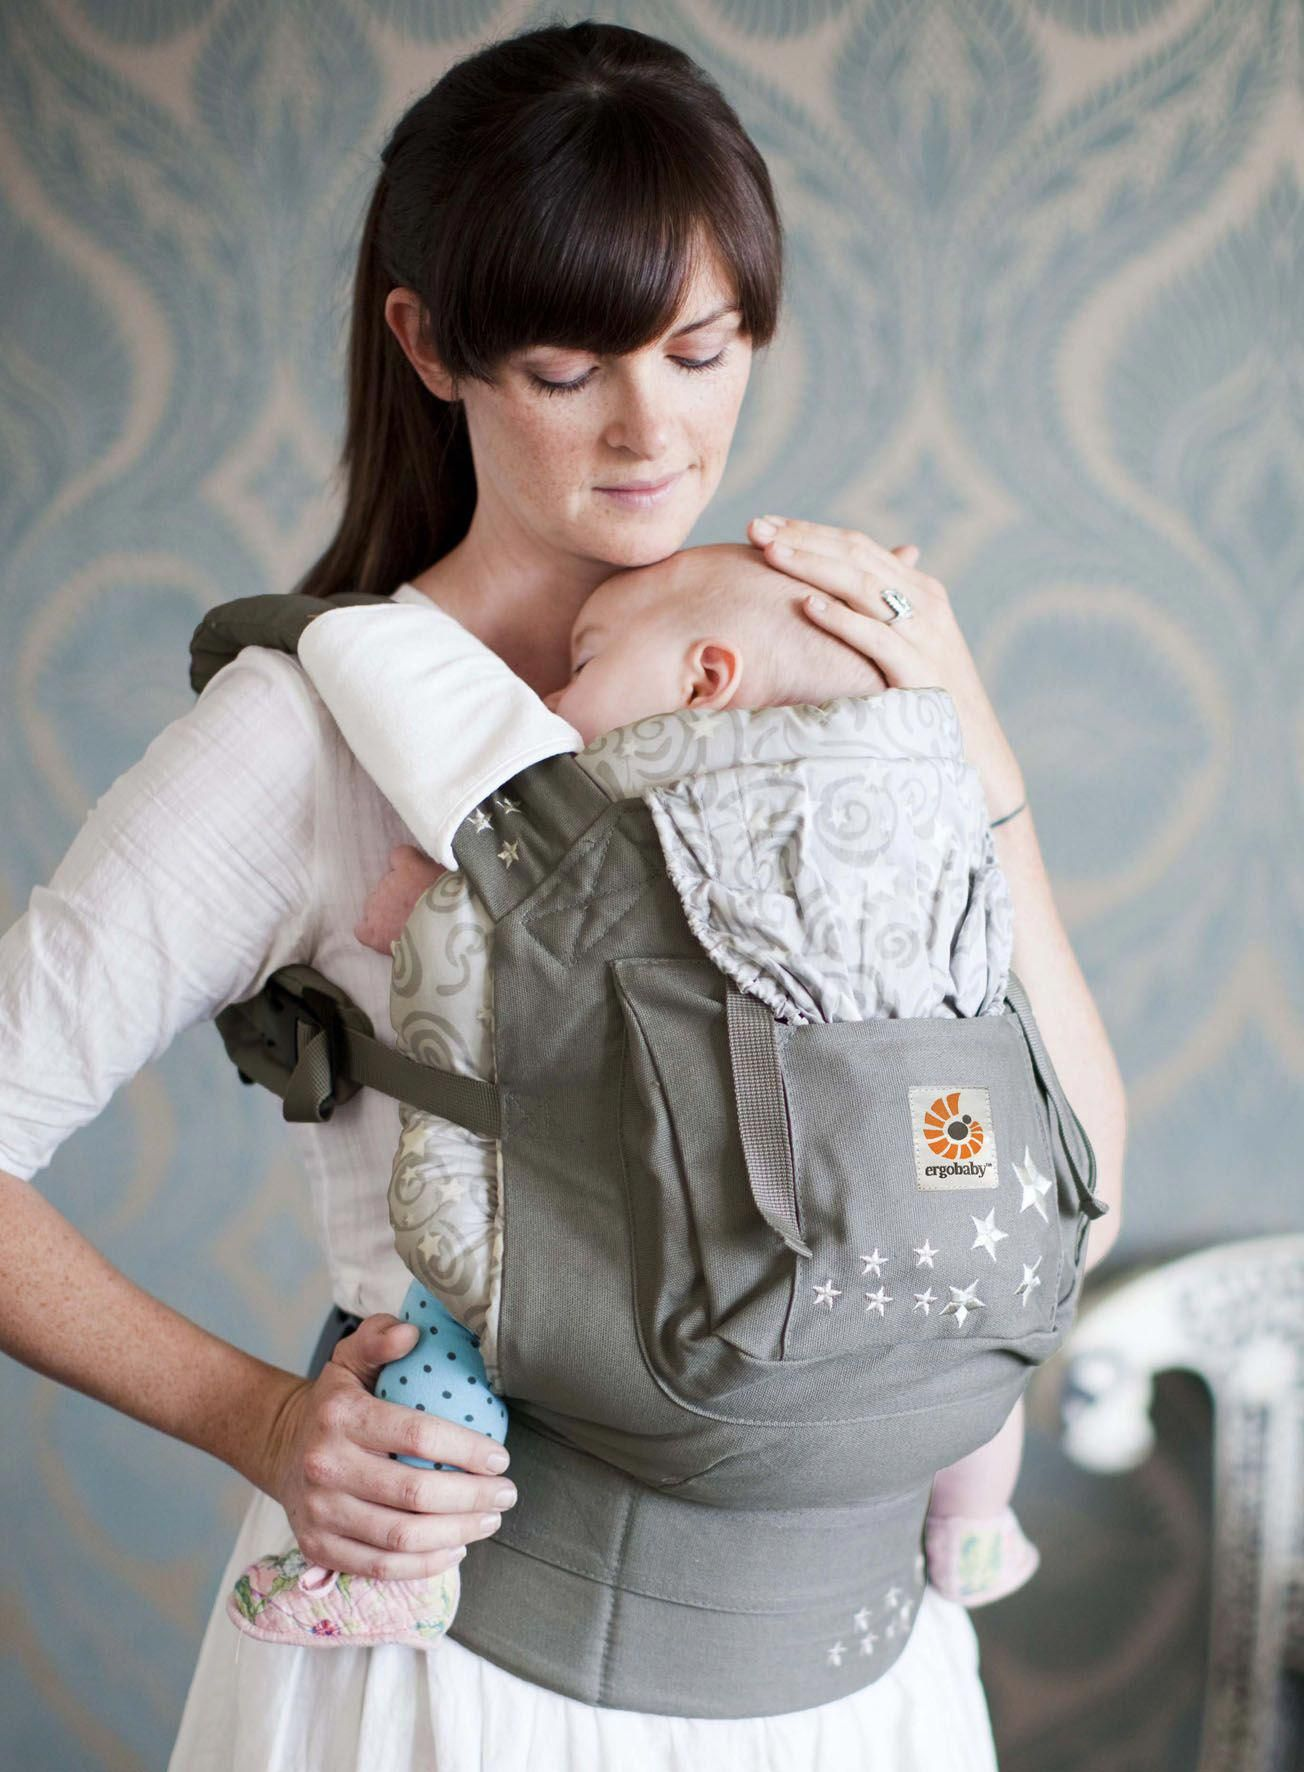 Hooray for Ergobaby Carrier Ours is the organic